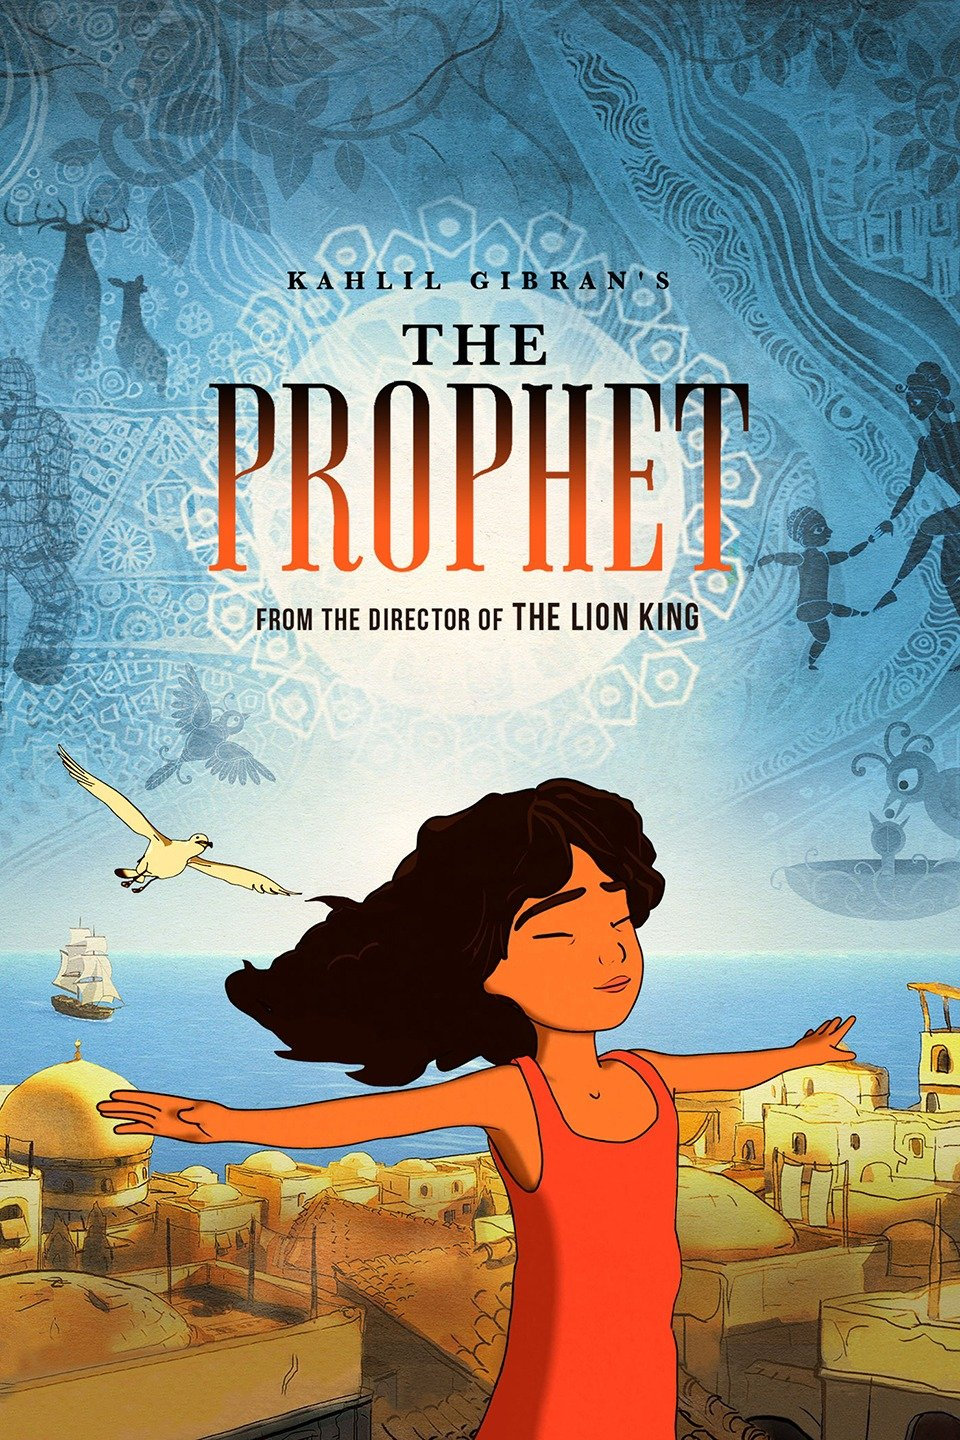 Kahlil Gibran's The Prophet, 2014 - Created by Roger Allers and Salma HayekA passion project combining a 3D animated overarching story, with snippets of 2D animation for the poetry. Characters are 3D toonshaded with toon outlines, sets are a combination of 3D painterly props and 2D matte paintings.Role: Junior 3D modeler / texture artistContributed to look-dev / creative solves for the glass objects, and opening sequence.